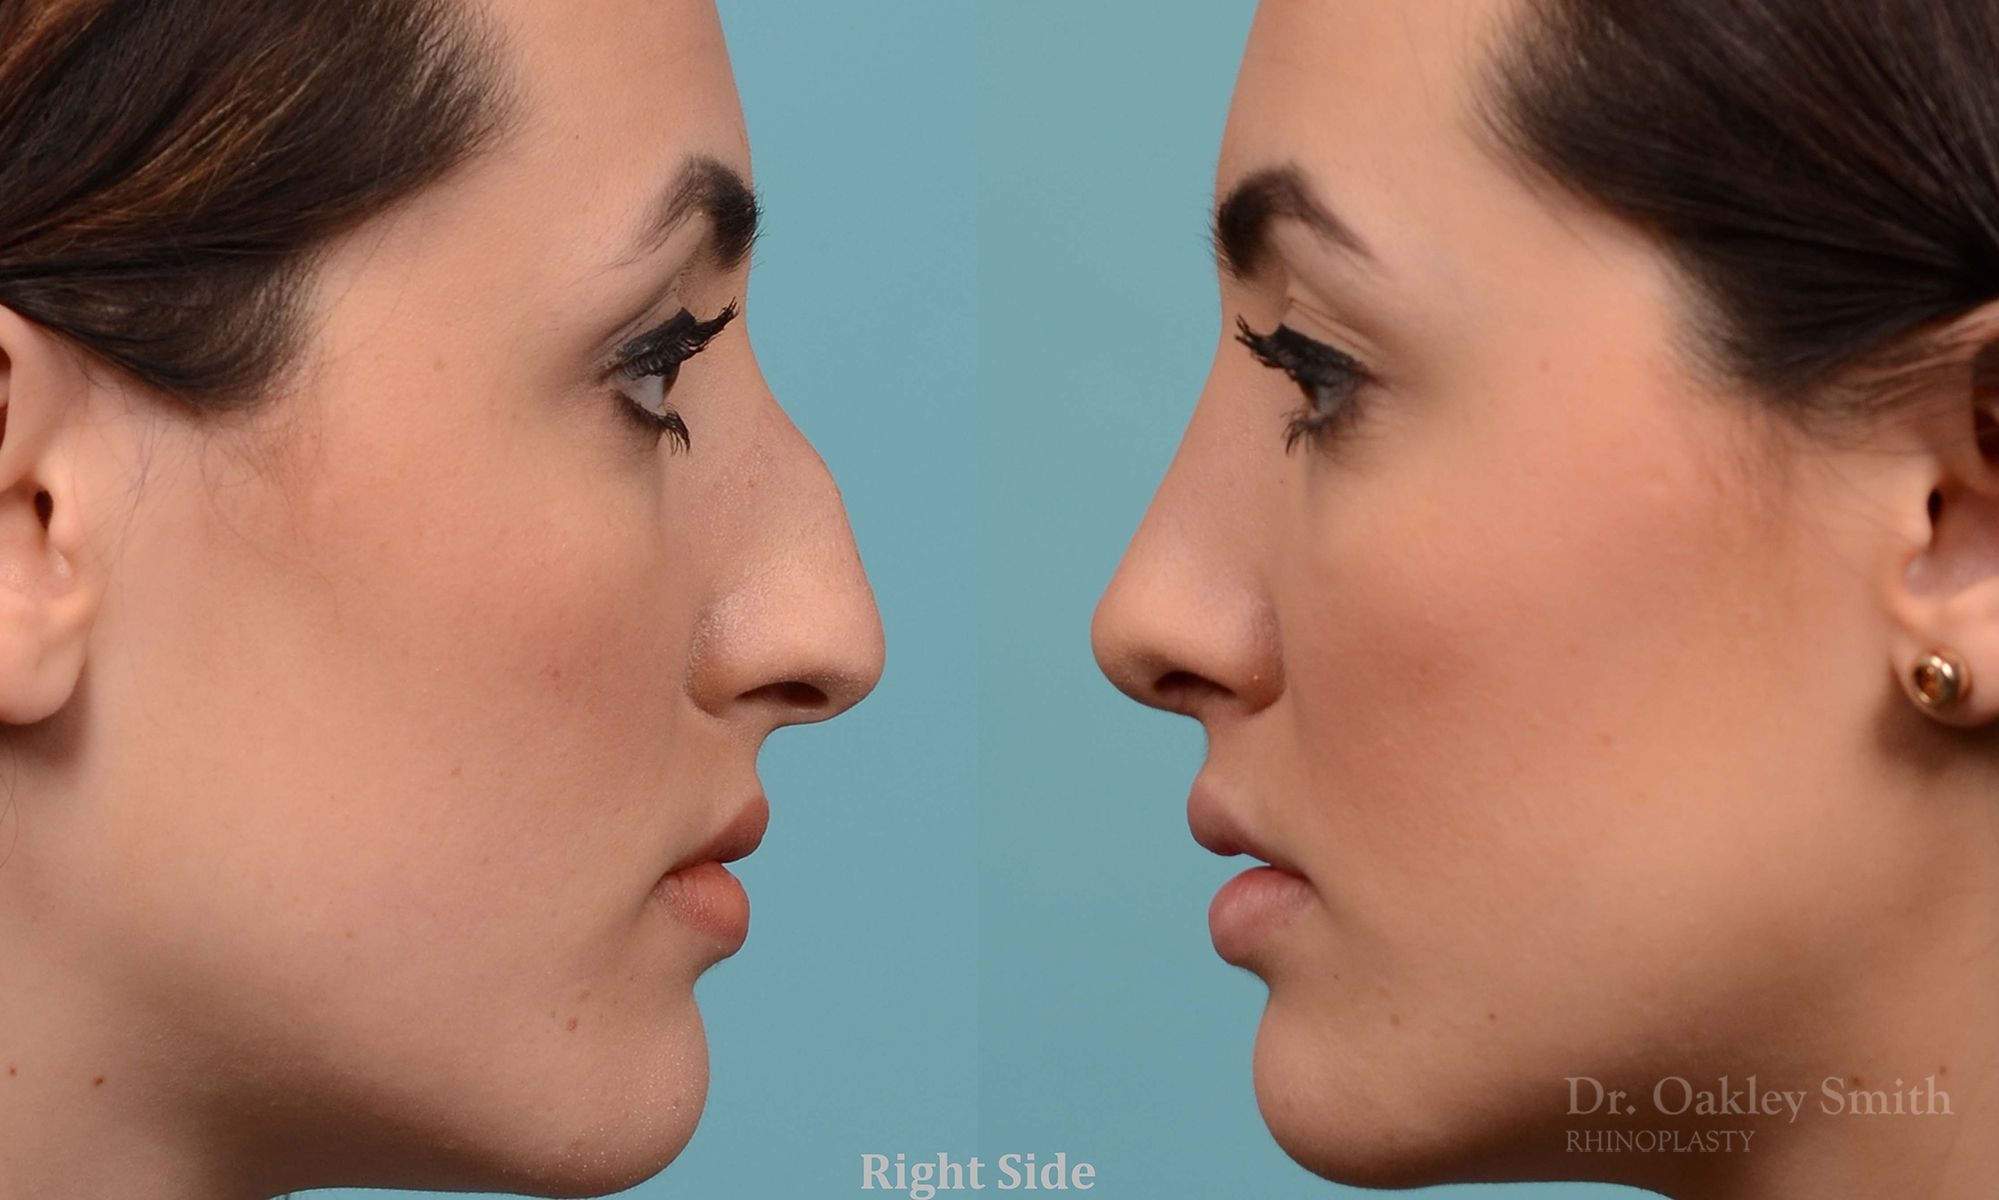 rhinoplasty ontario dr oakley smith surgeon